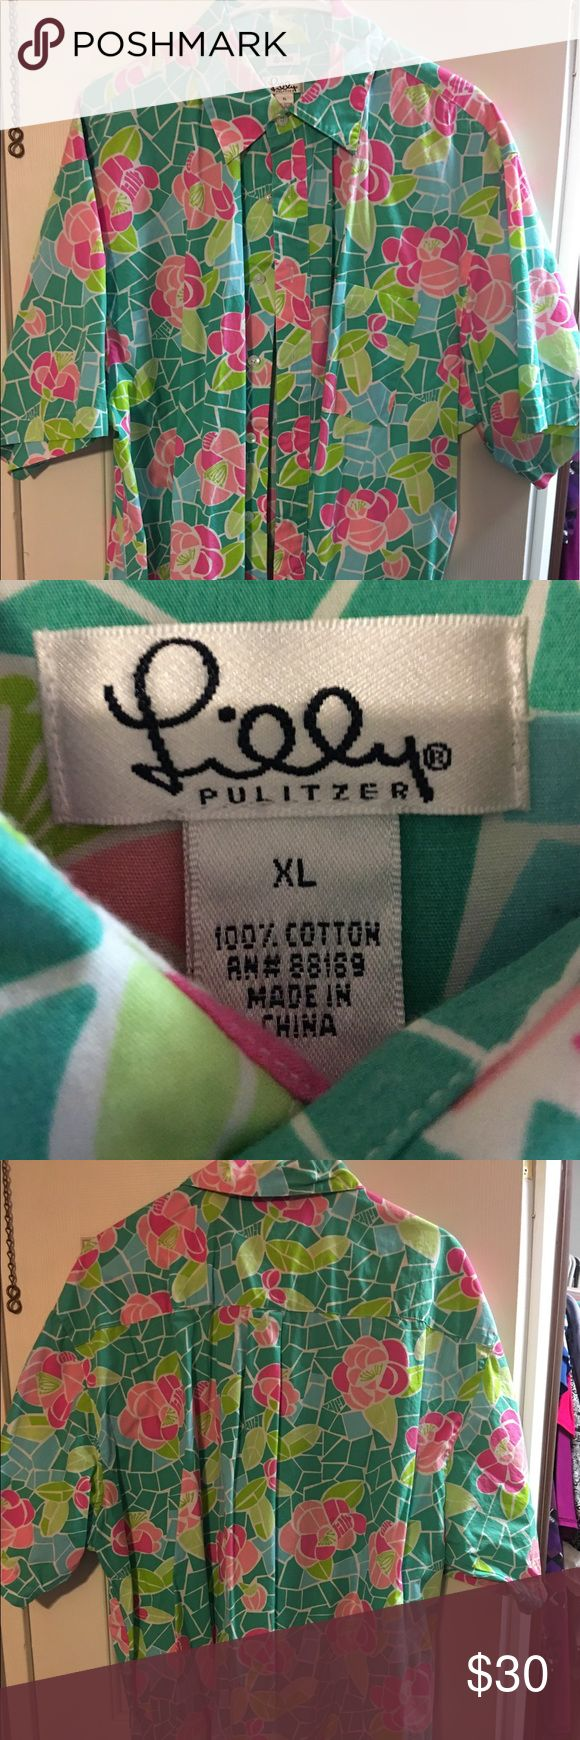 Lilly Pulitzer Button Up Half Sleeve Shirt XL Lilly Pulitzer Button Up shirt. Never worn, bought online. Beautiful colors. Half sleeve. Lilly Pulitzer Tops Button Down Shirts